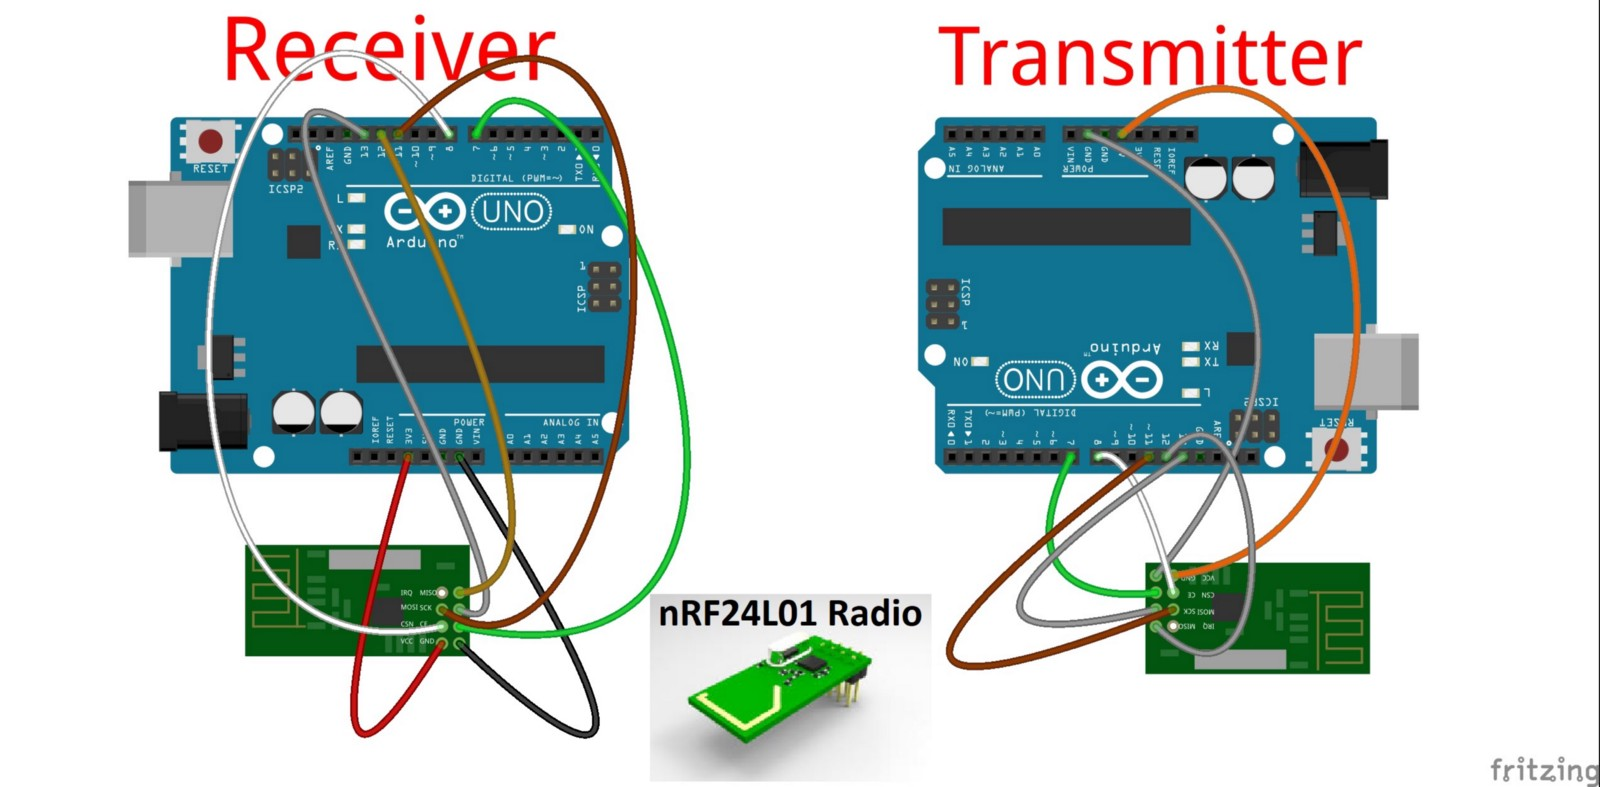 Nrf24l0 Popular Rf Module Using With Arduino Jungletronics Circuit Diagram My Radio Version Is Very Old It Does Not Even Have A Name But Come On Works I Already Bought New One For The Balanced Car Design